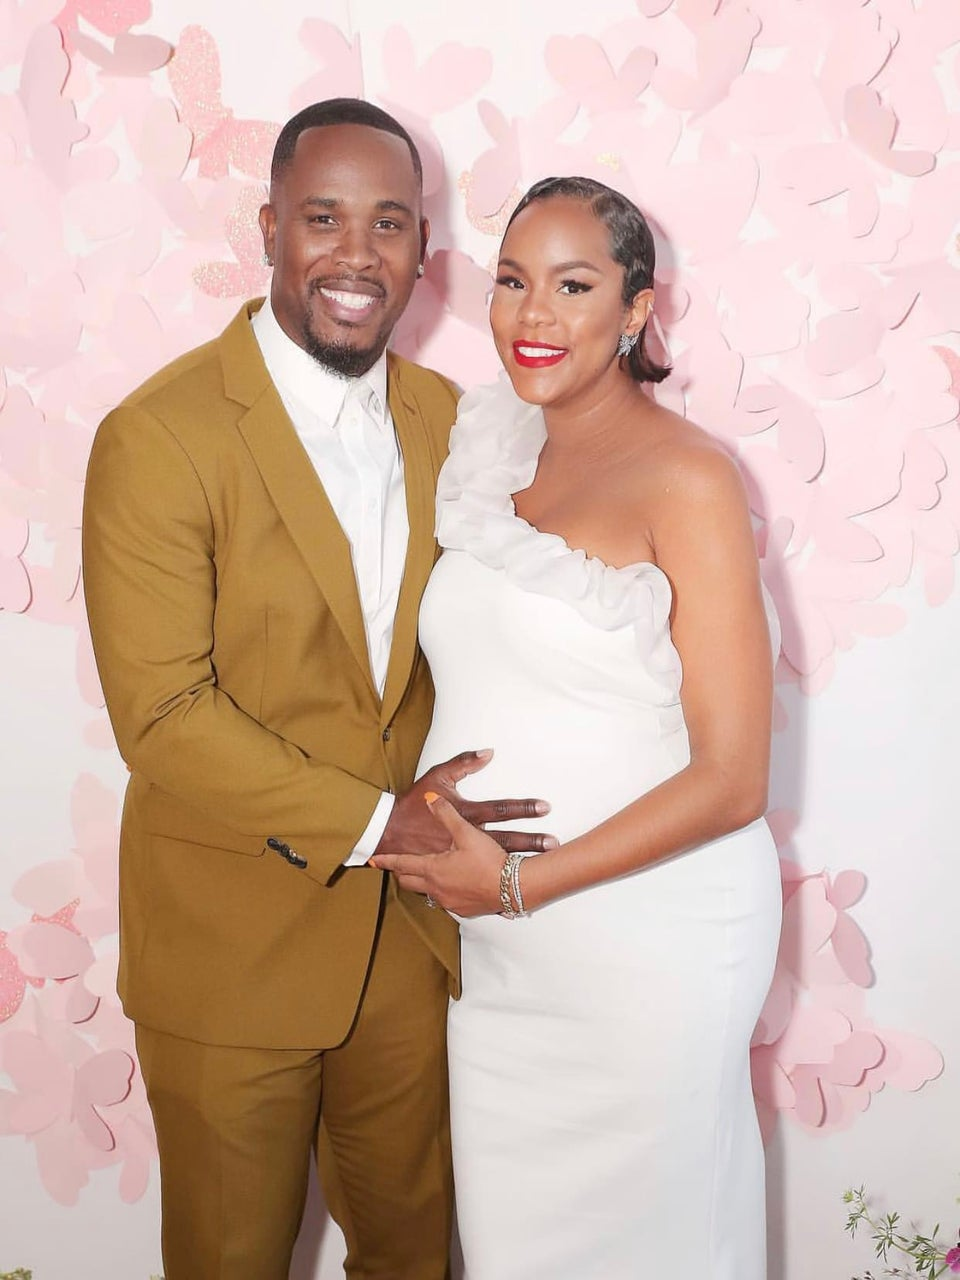 Oh, Baby! Every Time LeToya Luckett's Gorgeous Pregnancy Glow Stole The Show